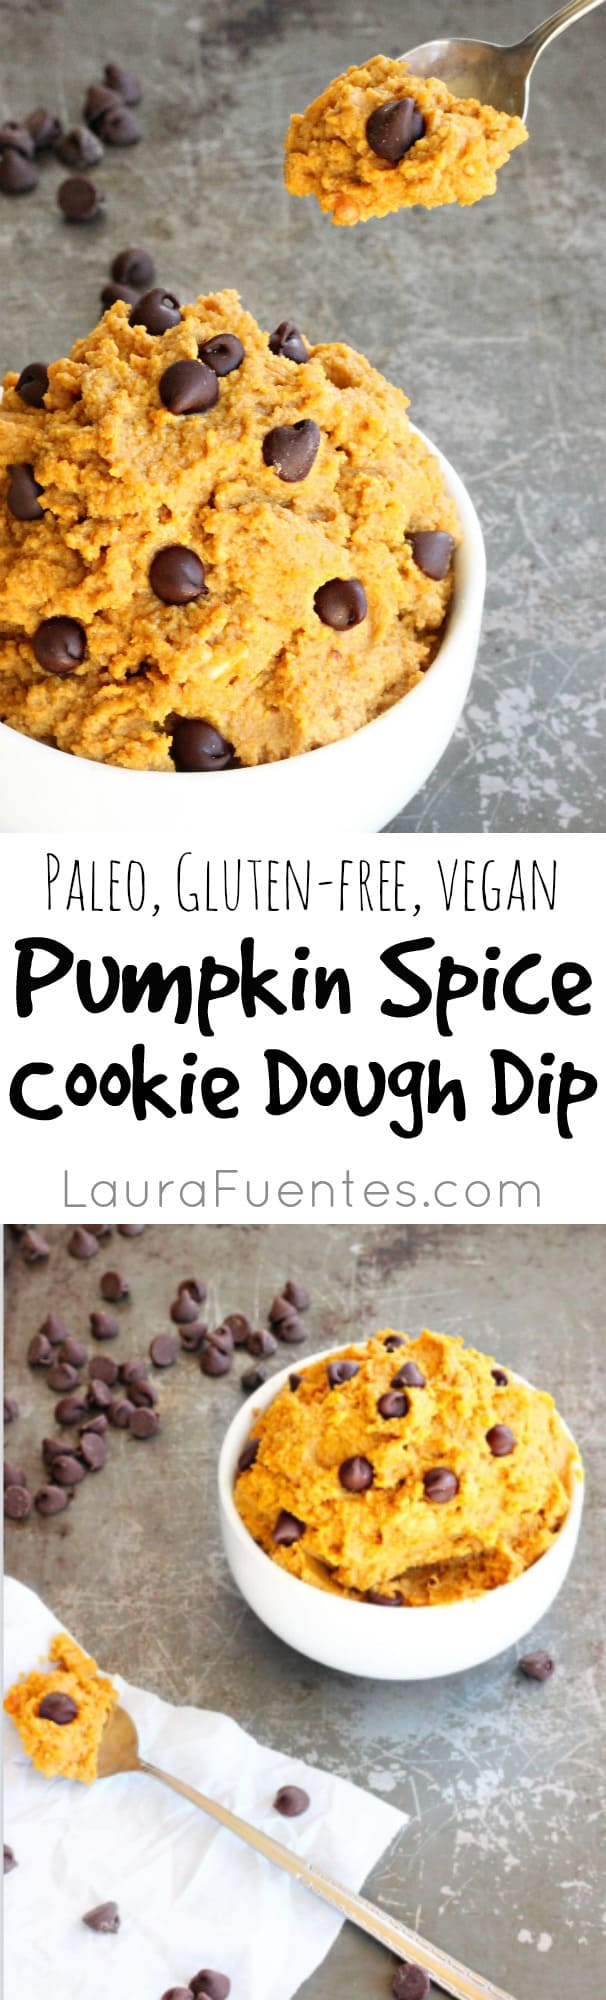 Healthy Snack: Pumpkin Spice Cookie Dough Dip - Best served with seasonal apples for a perfect after school snack!